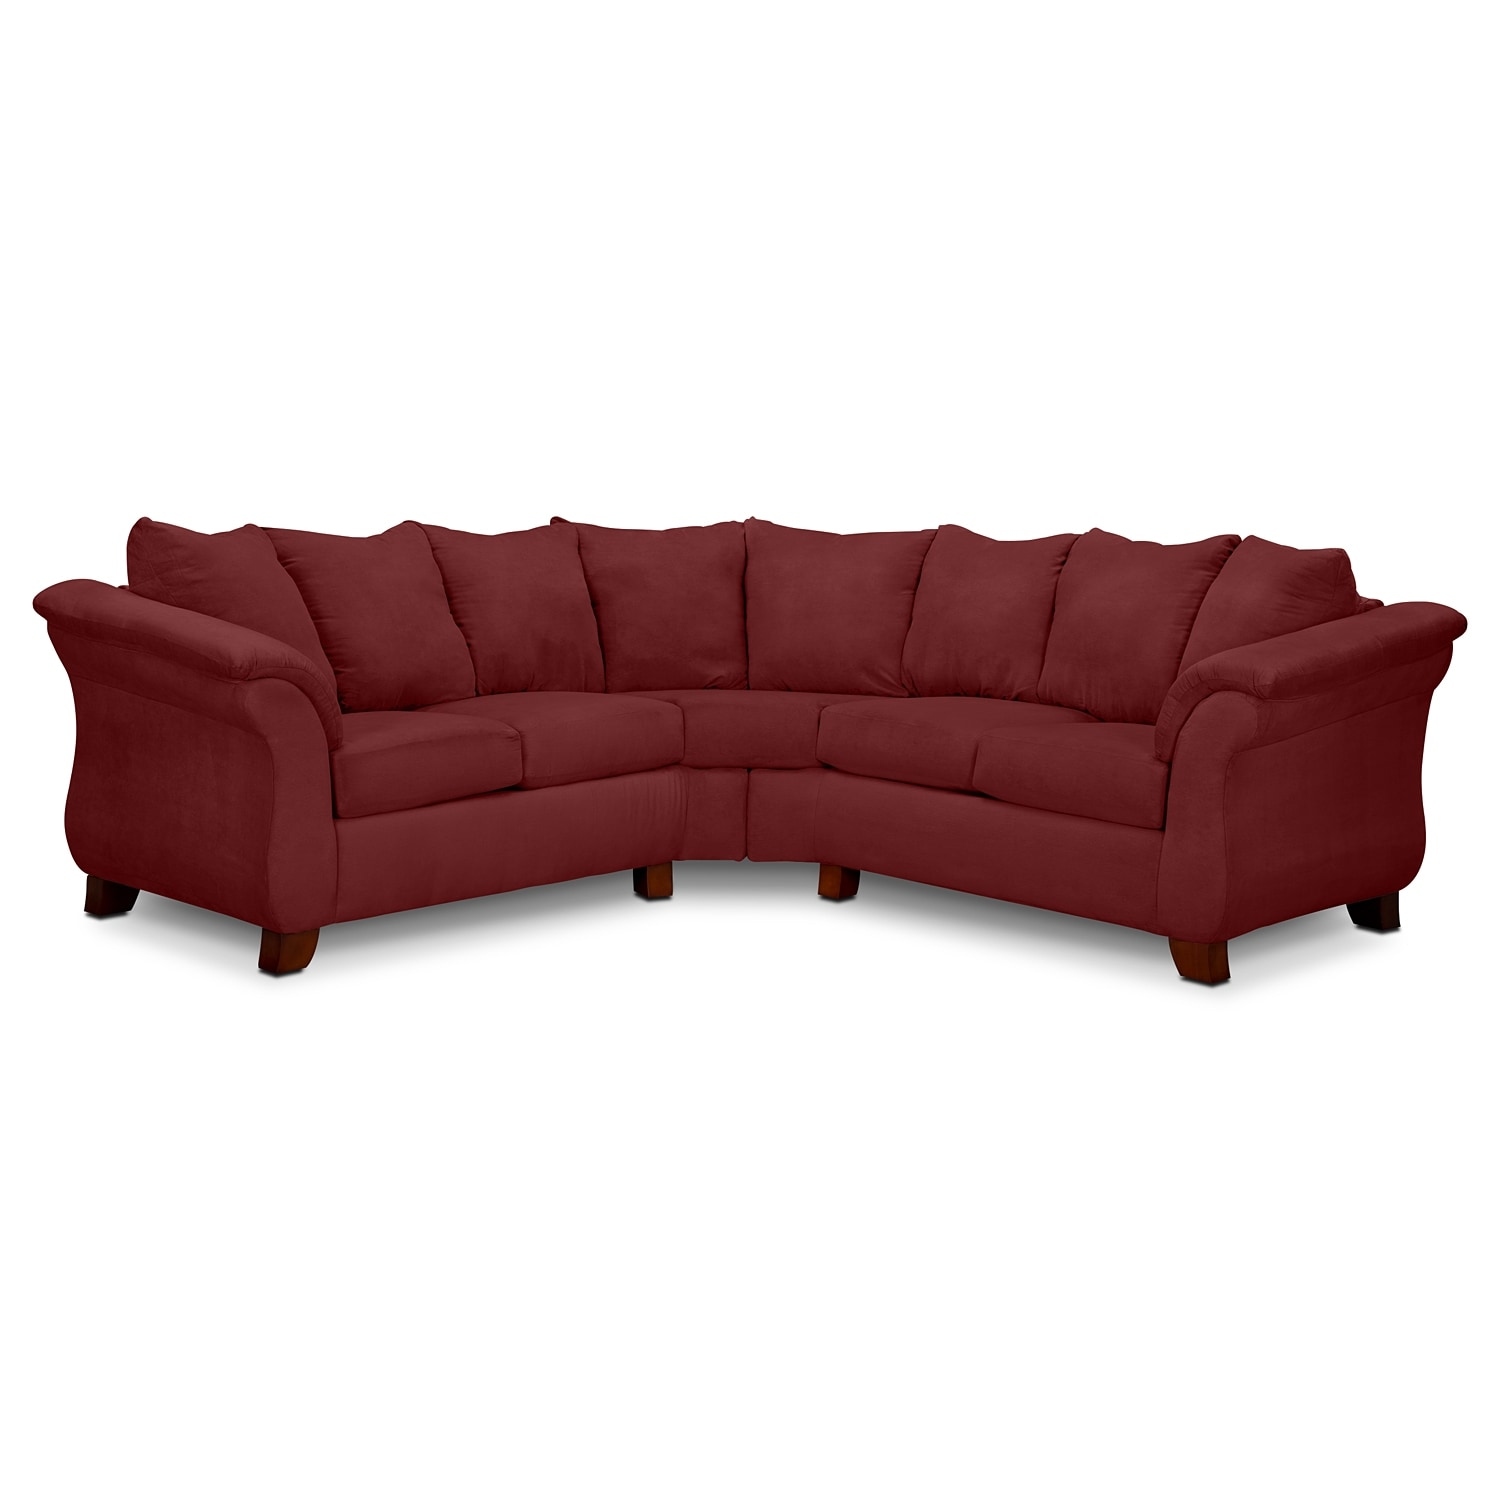 Shop Living Room Furniture Sale